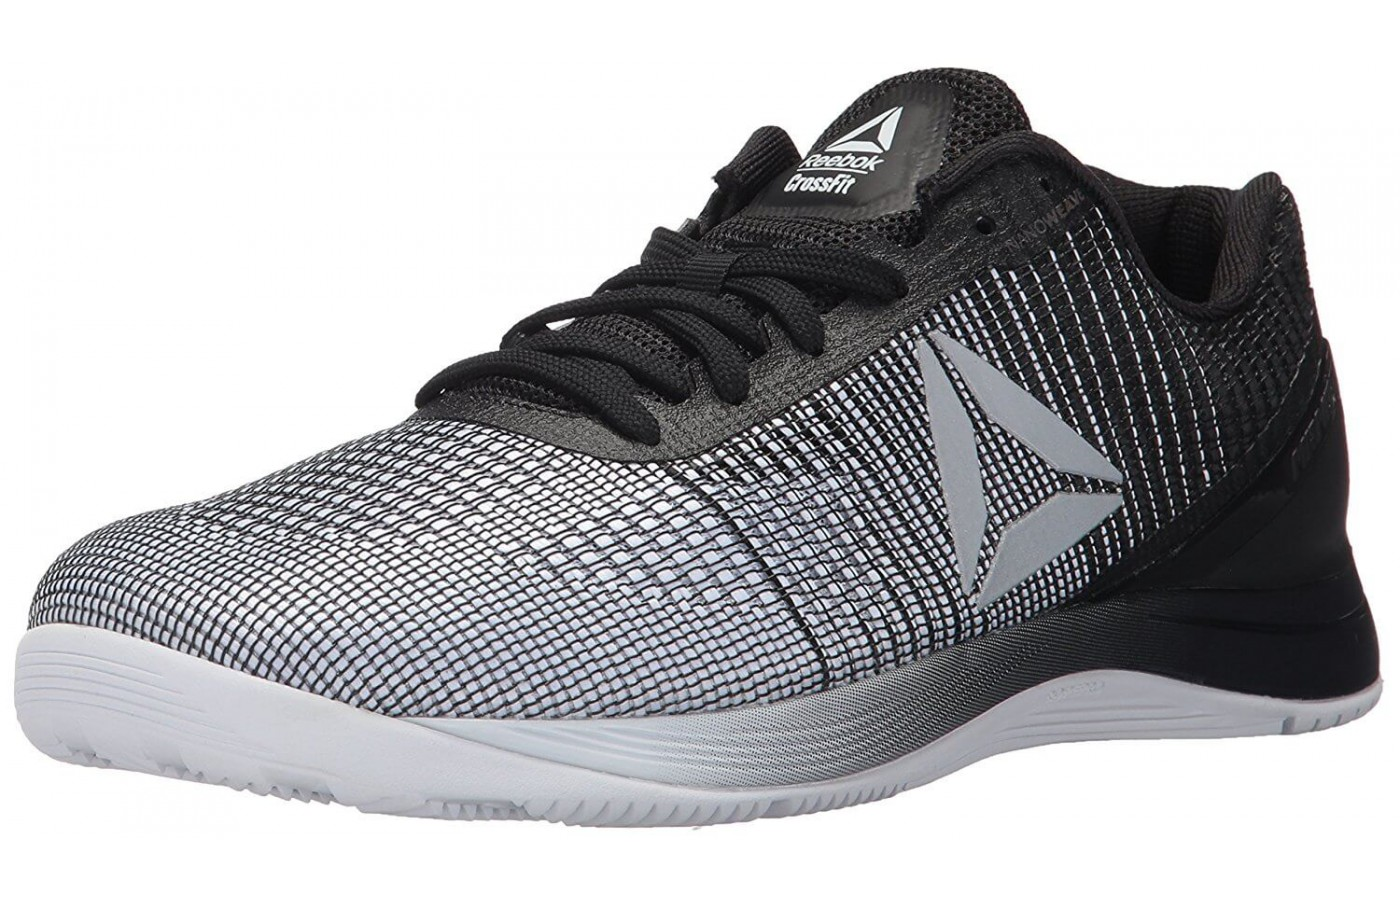 The Reebok Crossfit Nano 7 Weave was designed to fix mistakes in the original design.